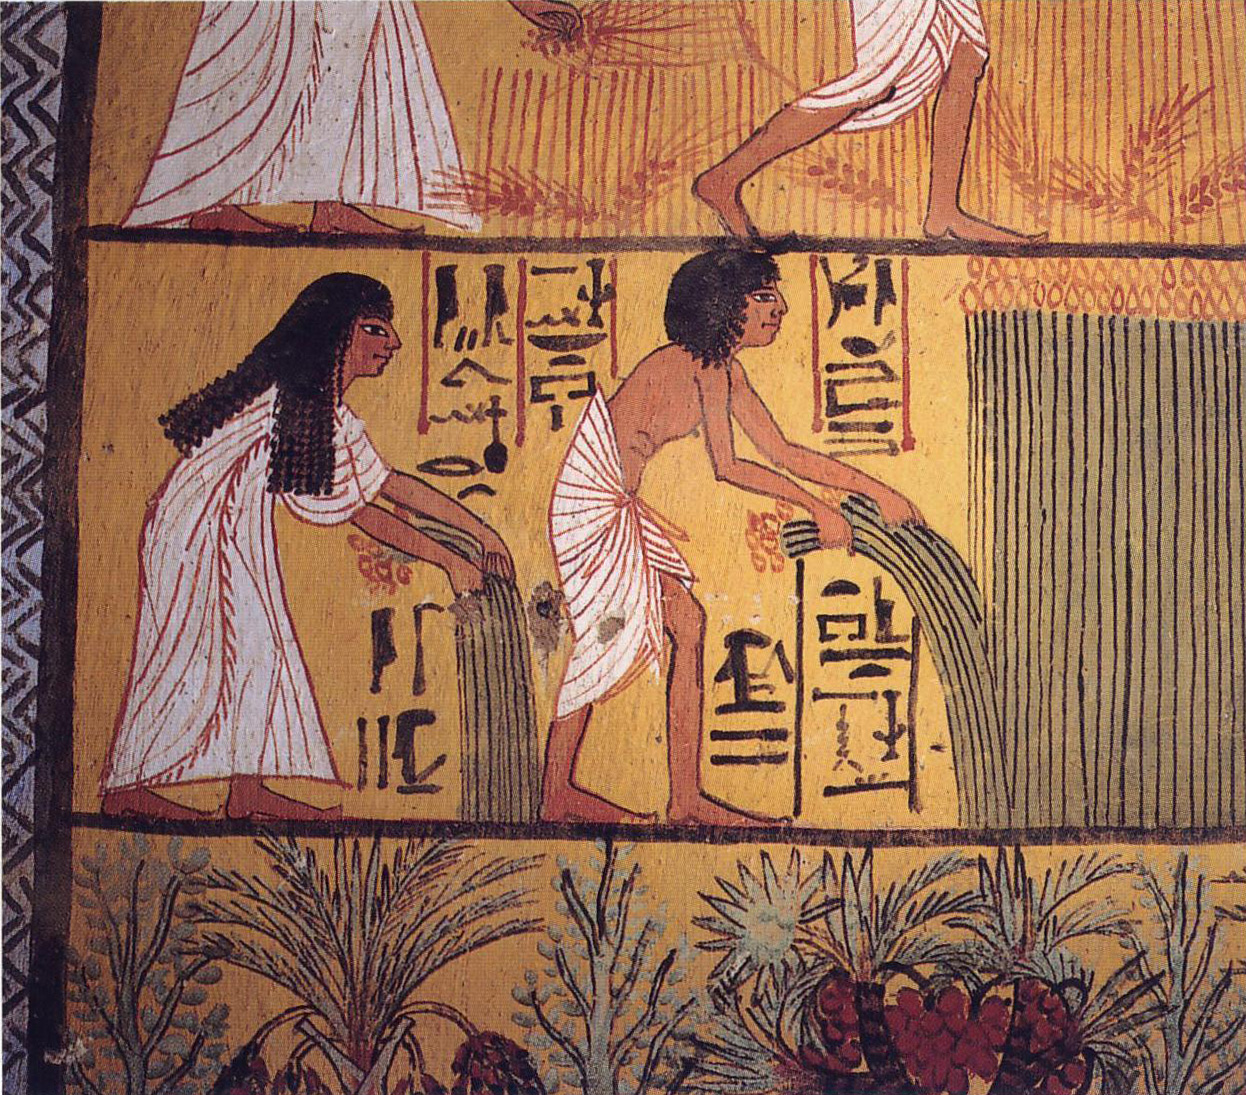 https://i2.wp.com/upload.wikimedia.org/wikipedia/commons/a/ae/Egyptian_harvest.jpg